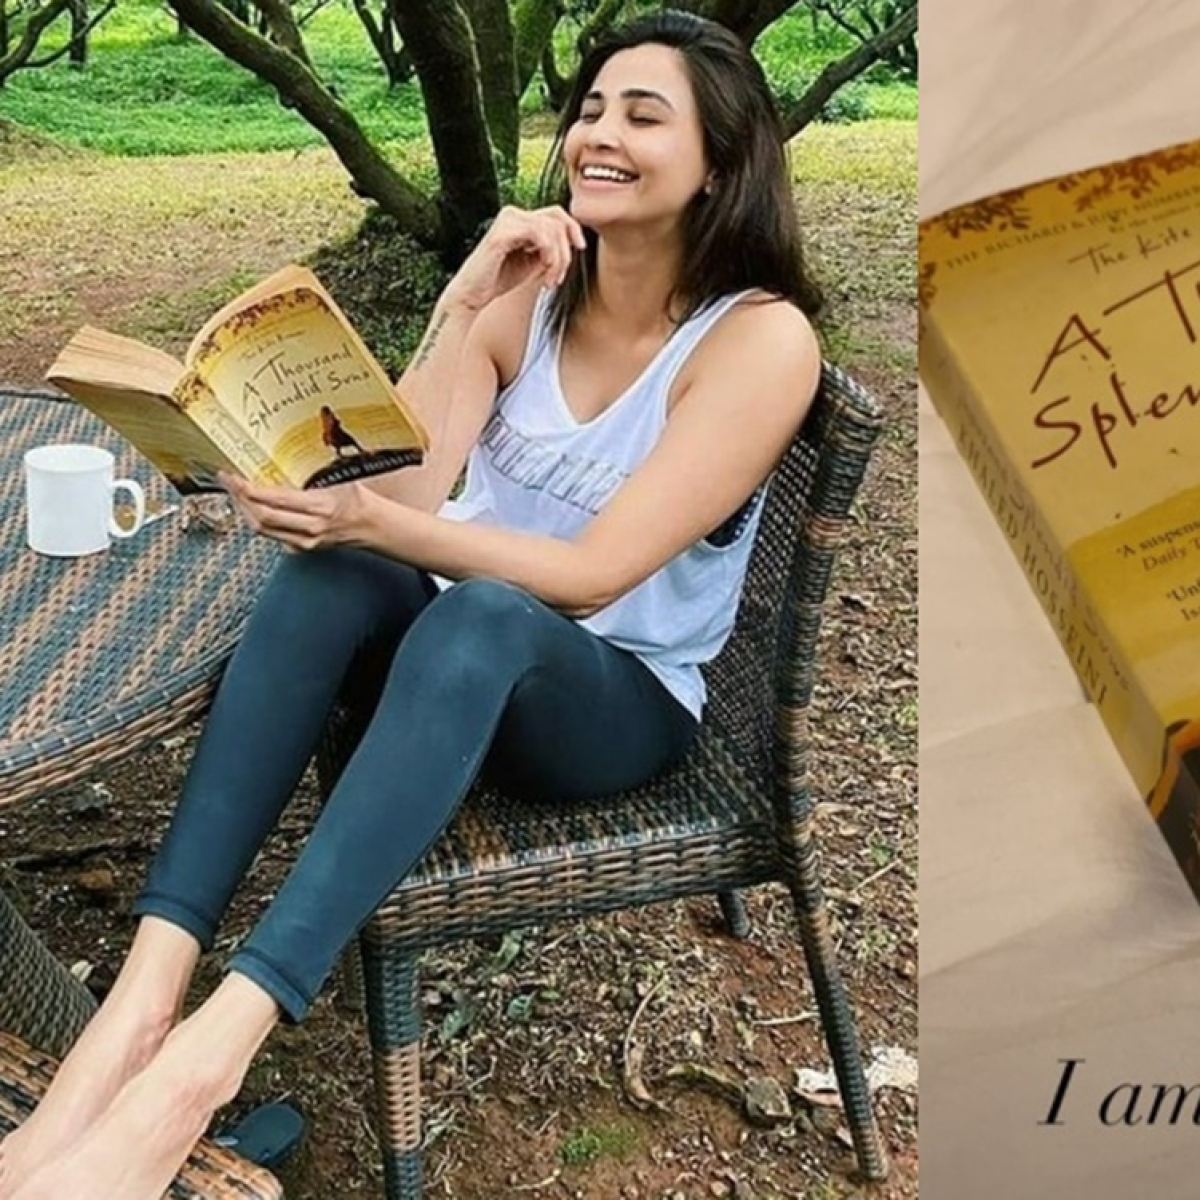 Daisy Shah apologises for sharing a smiling picture while reading a tragic novel